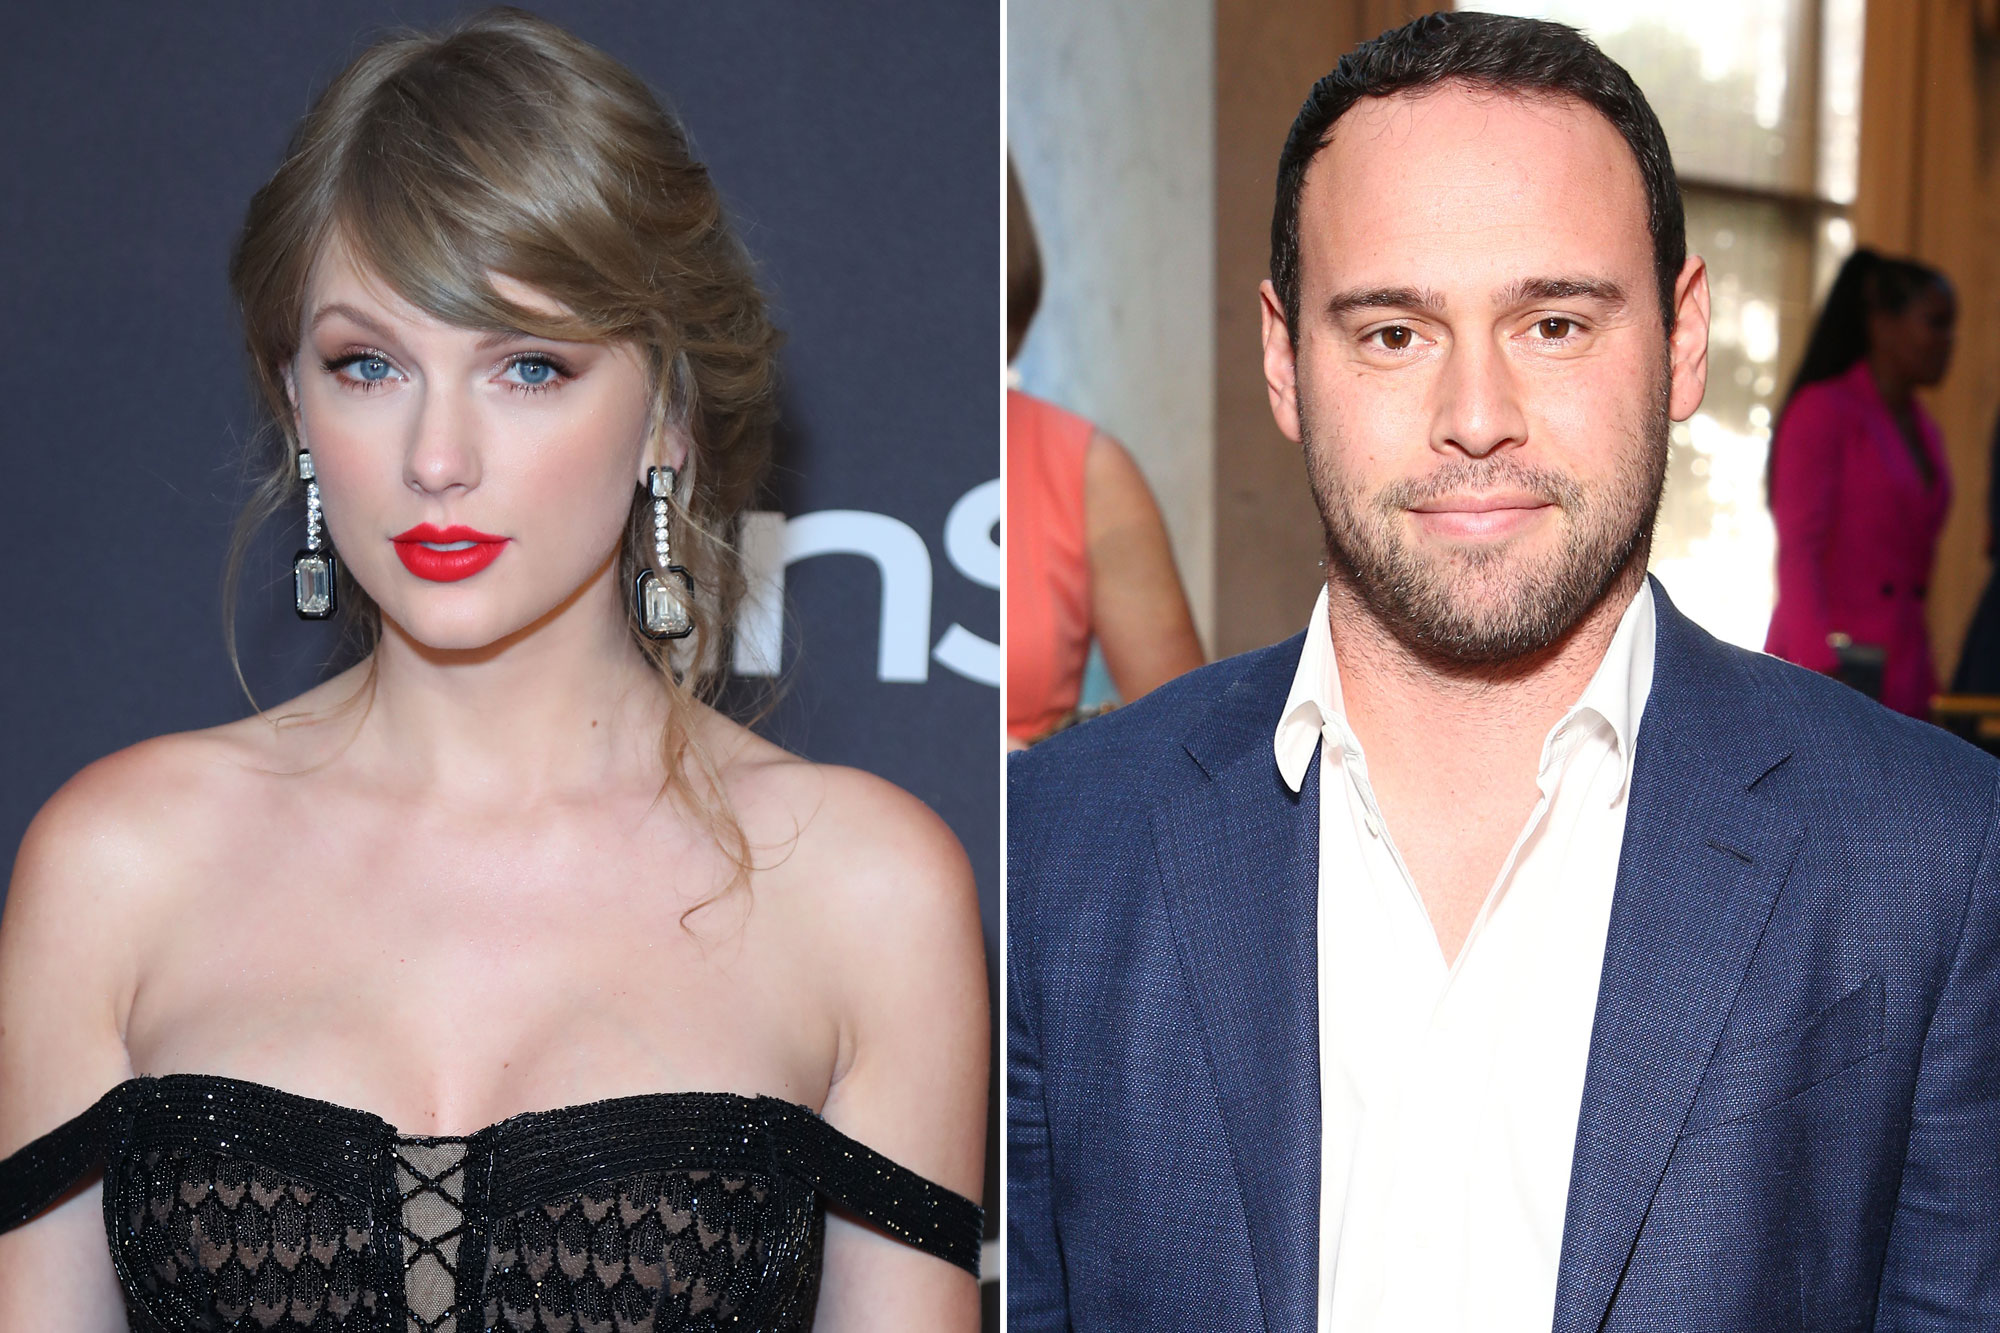 Team Taylor Or Team Scooter Who Supports Taylor Swift Scooter Braun In Music Dispute Ew Com